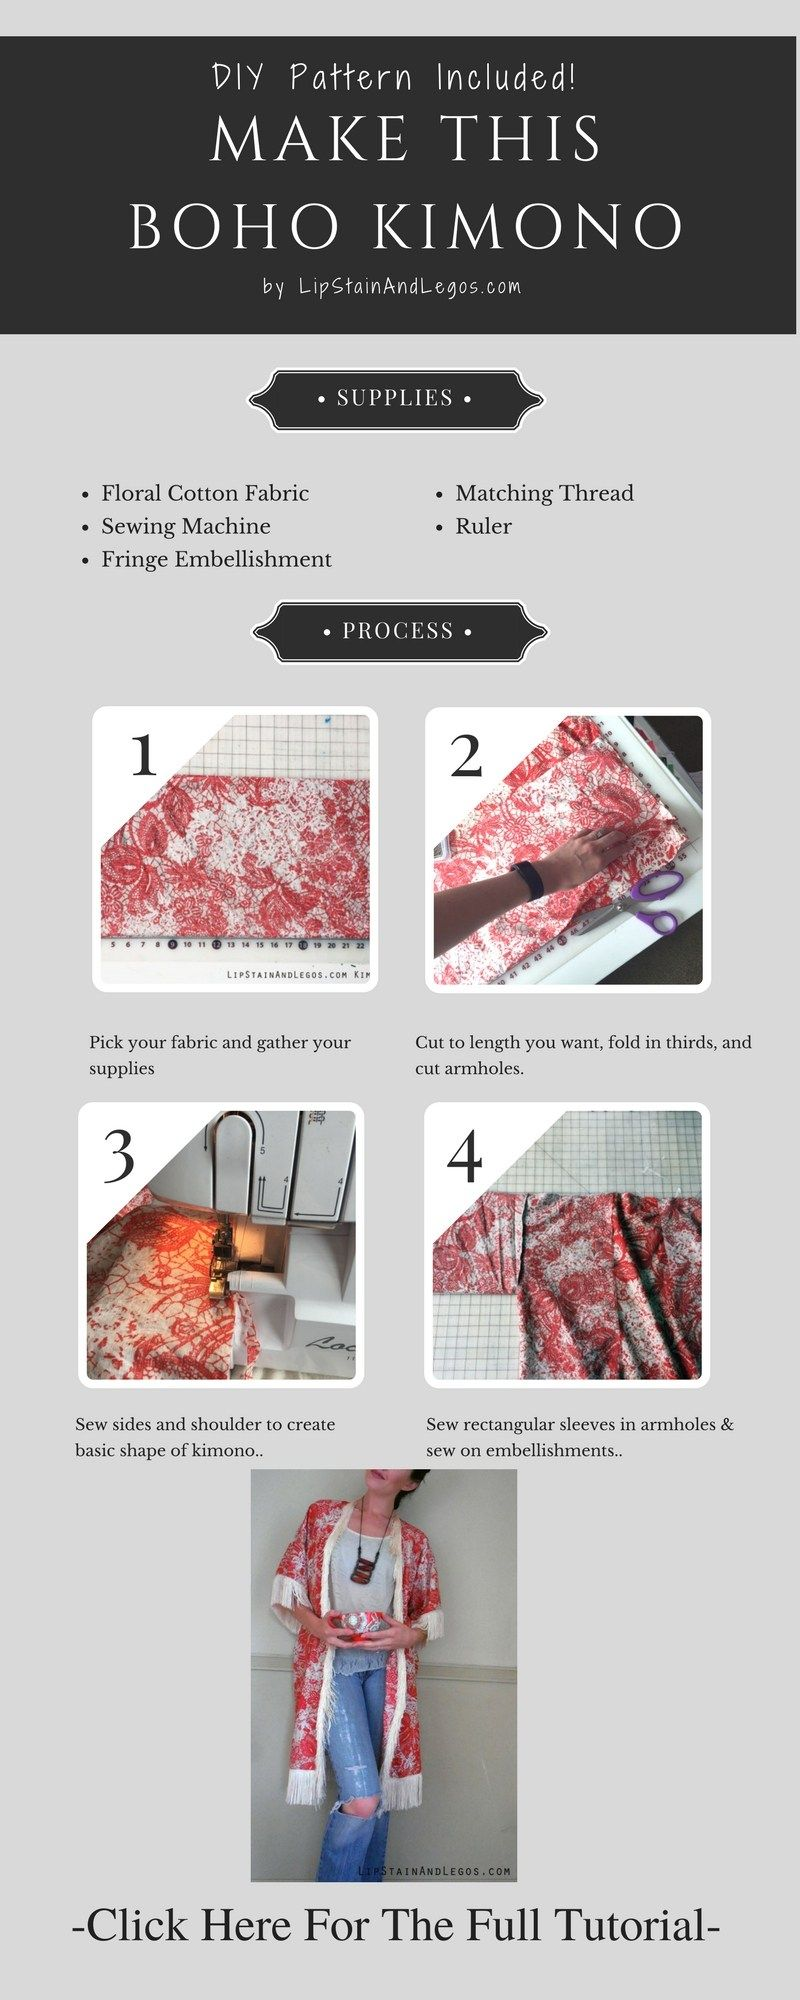 How To Make A DIY Kimono In 5 Simple Steps | Do It Yourself Today ...